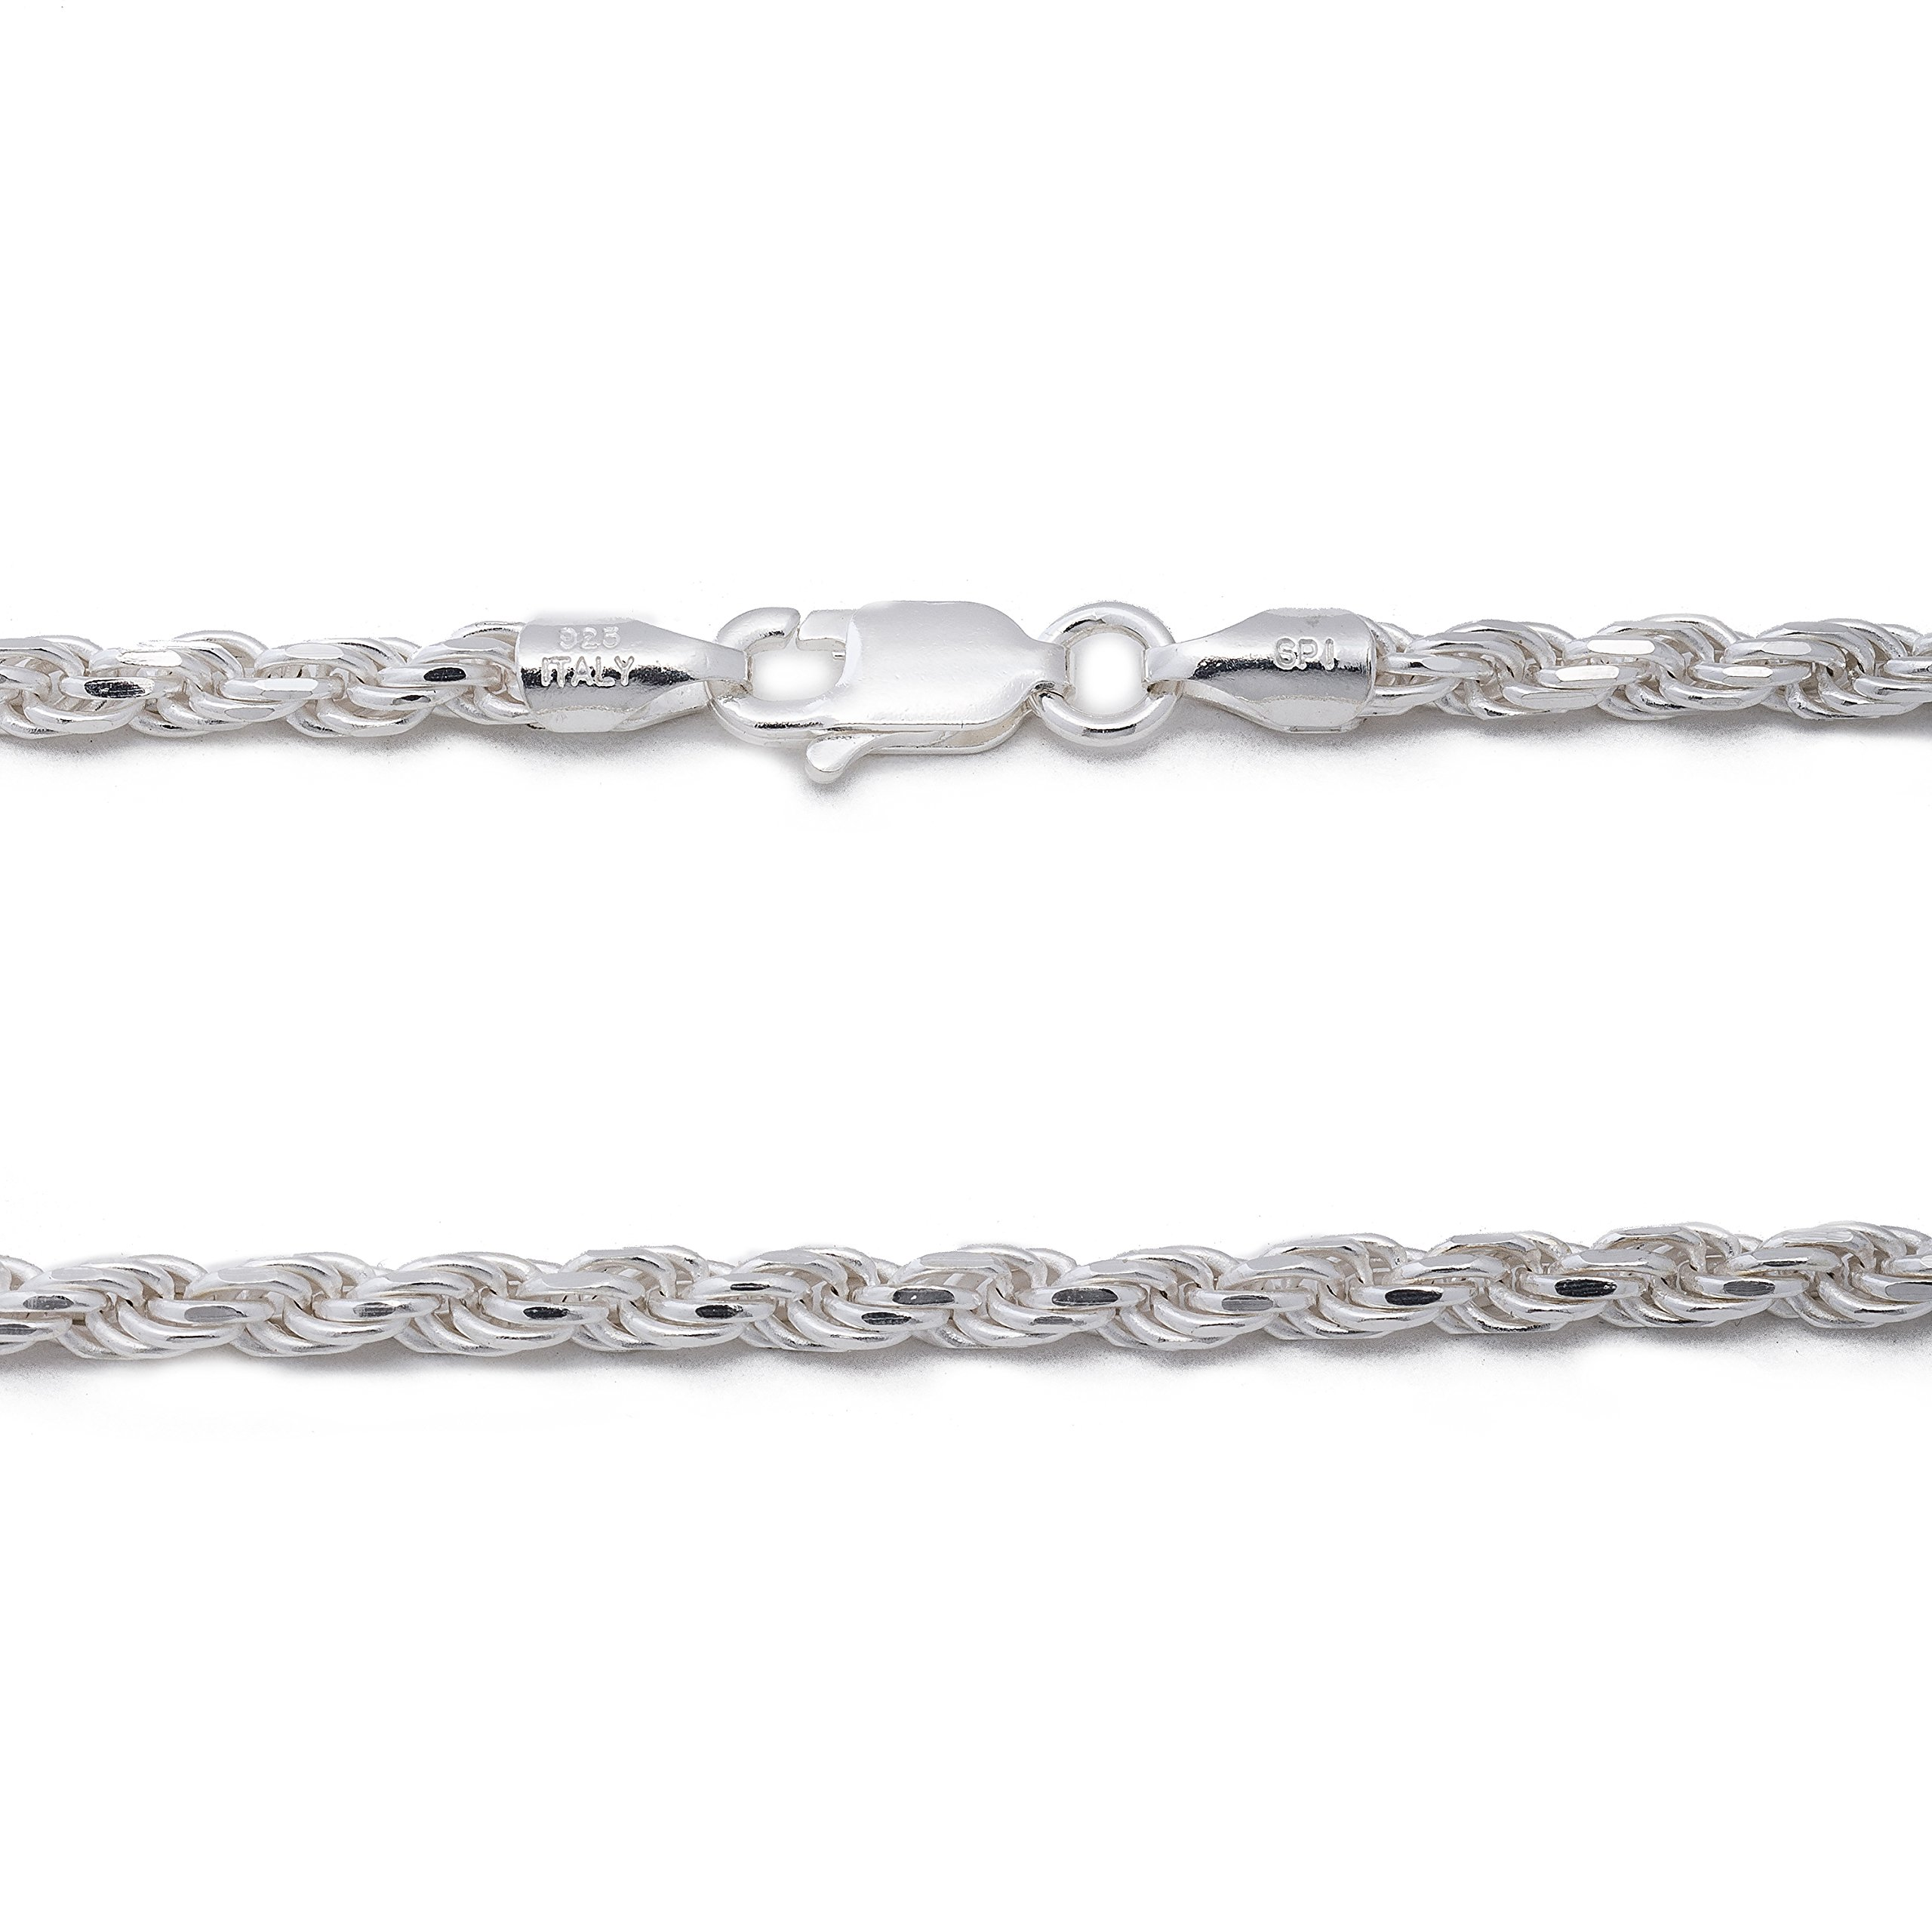 925 Sterling Silver 3MM Rope Chain Lobster Claw Clasp - 24'' by Designer Sterling Silver (Image #3)